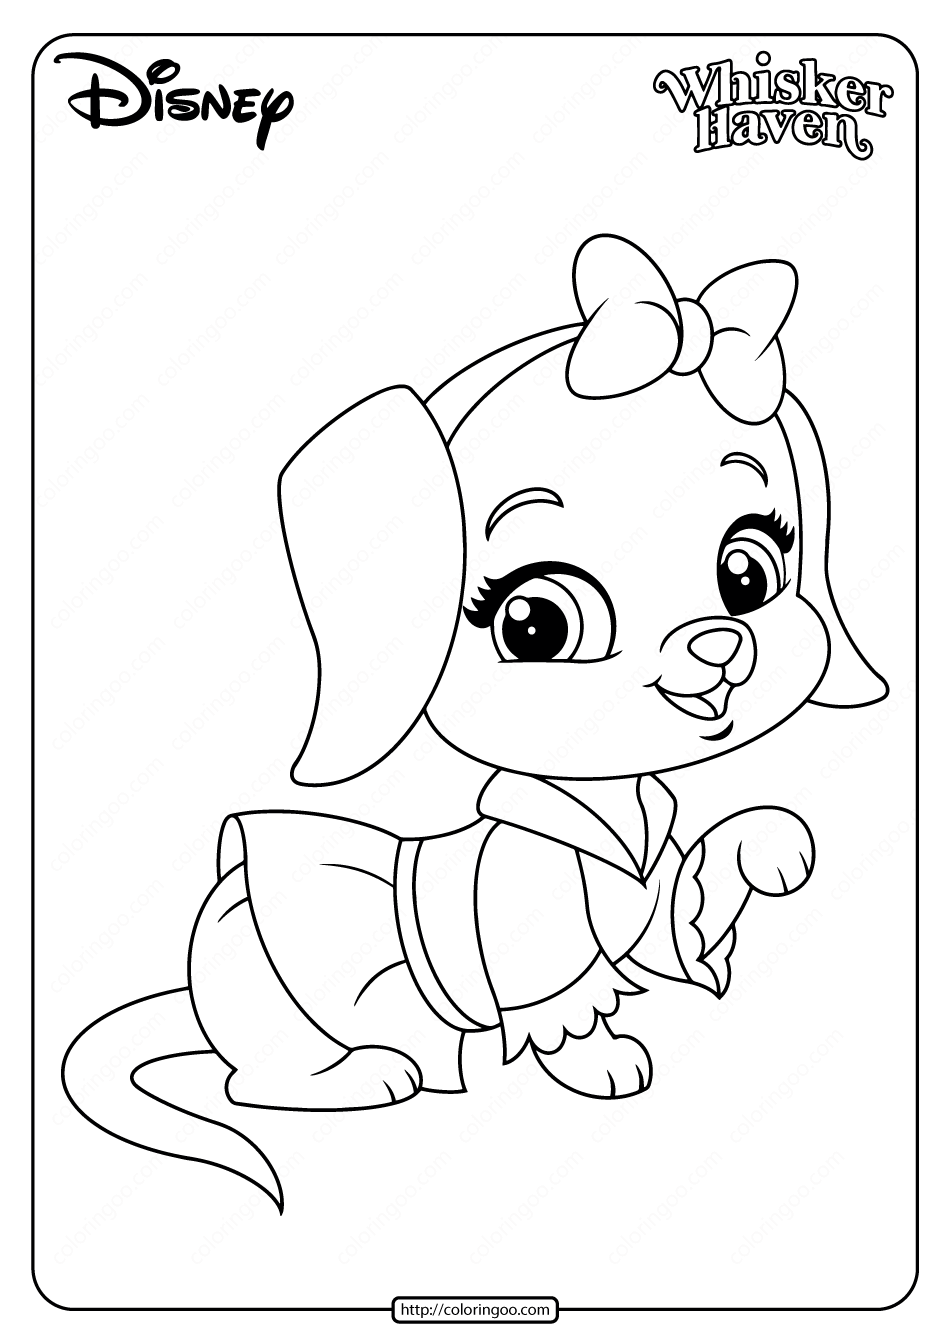 Adopt Me Pets Coloring Pages Kitsune